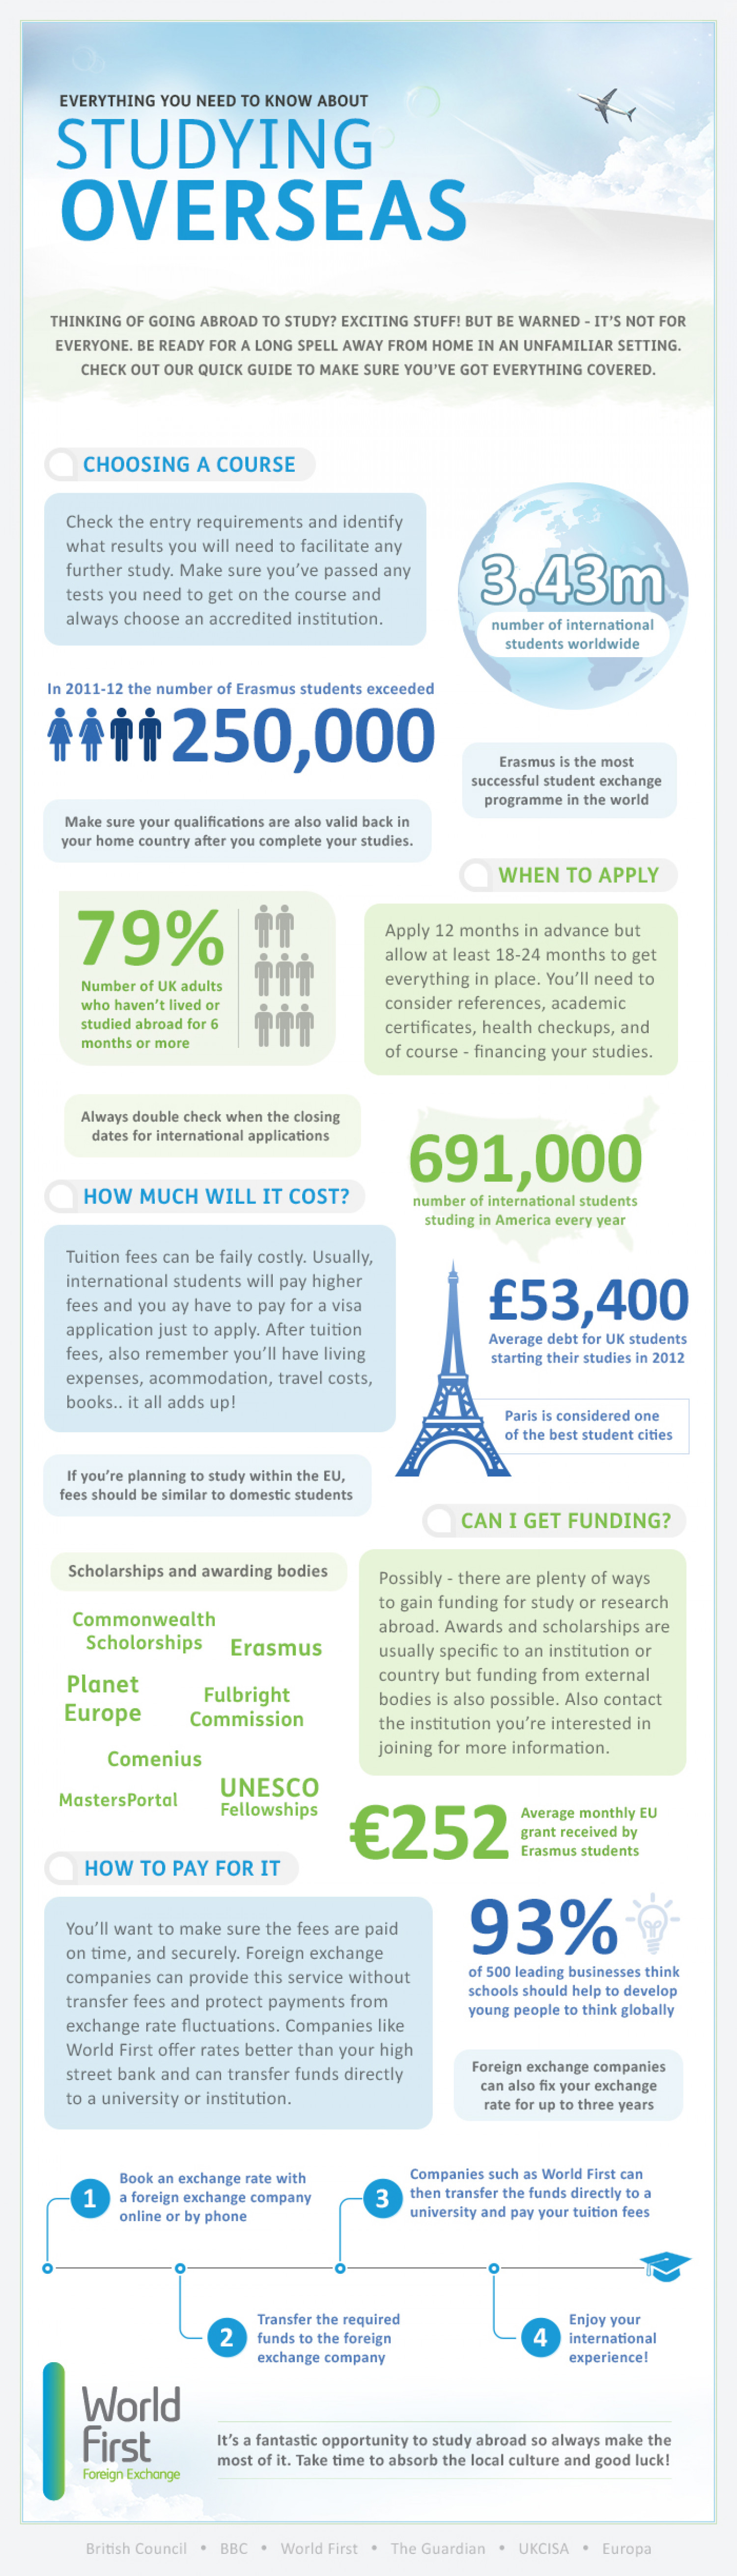 Everything you need to know about studying over seas Infographic